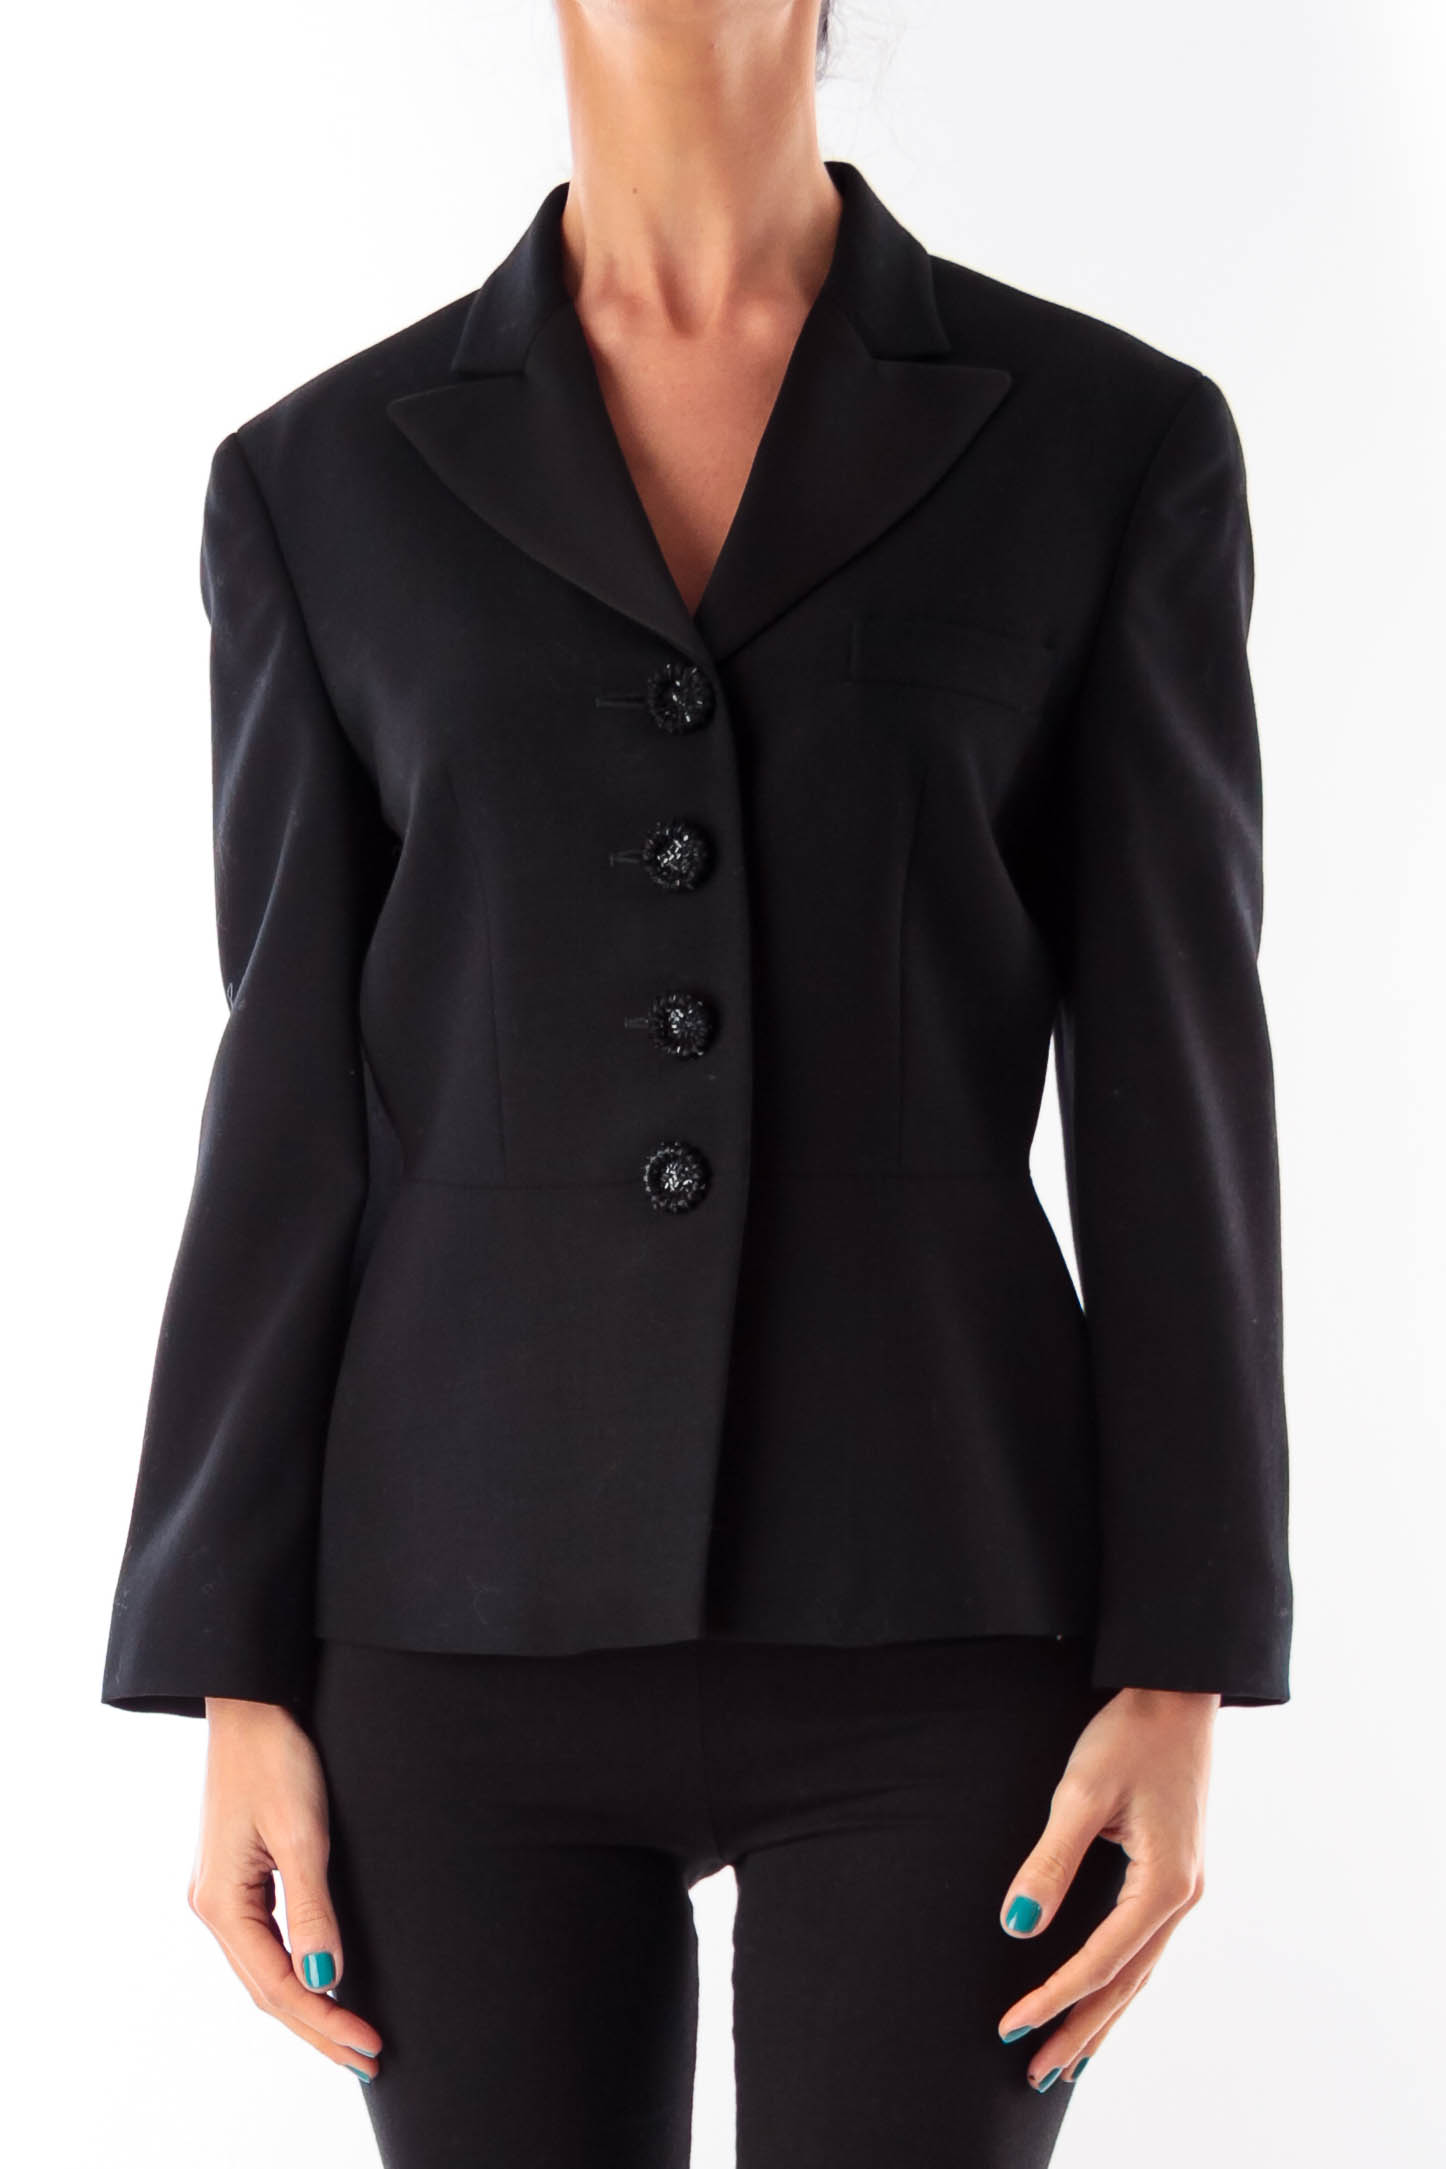 Black Embroider Button Blazer